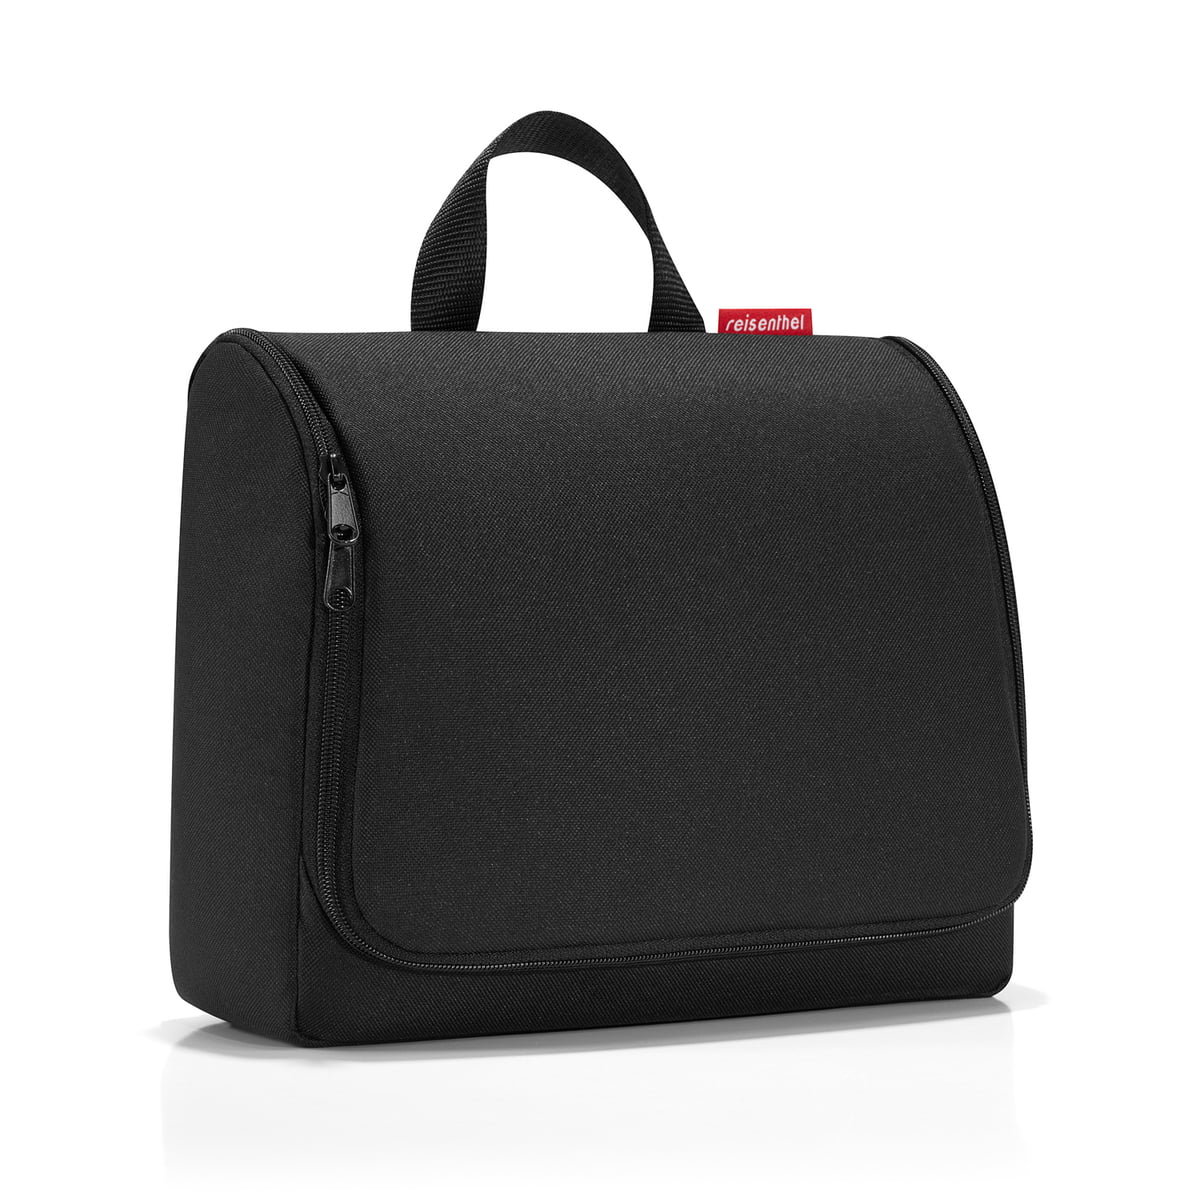 Trousse de toilette Reisenthel Toiletbag XL Black noir